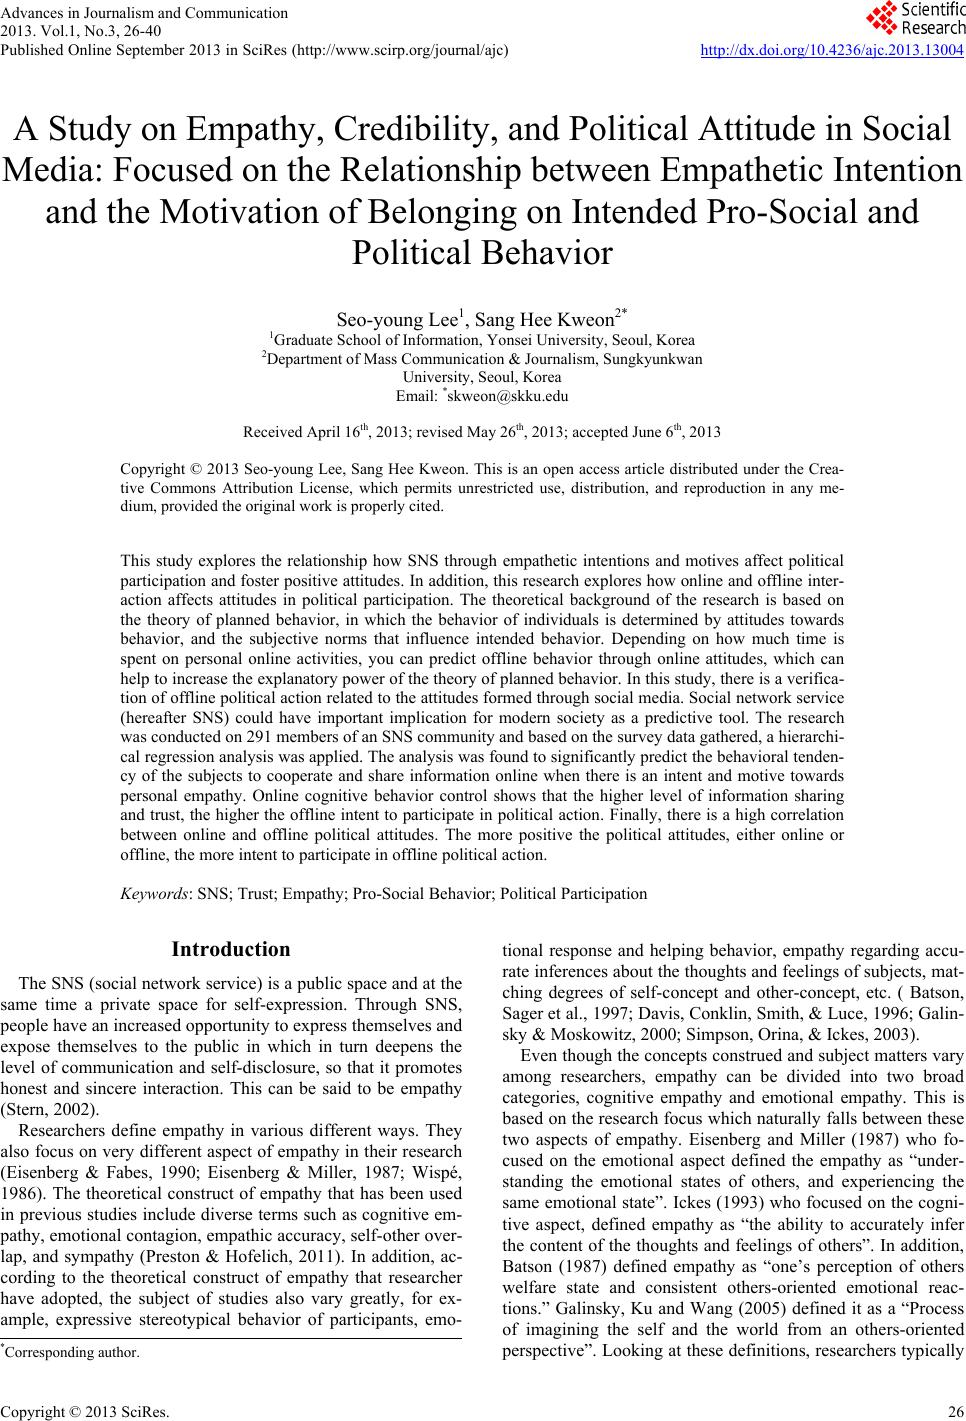 essays on mass behavior The decline of social capital and political behavior due to technology and mass media the advance of technology has always been considered as beneficial to soci.